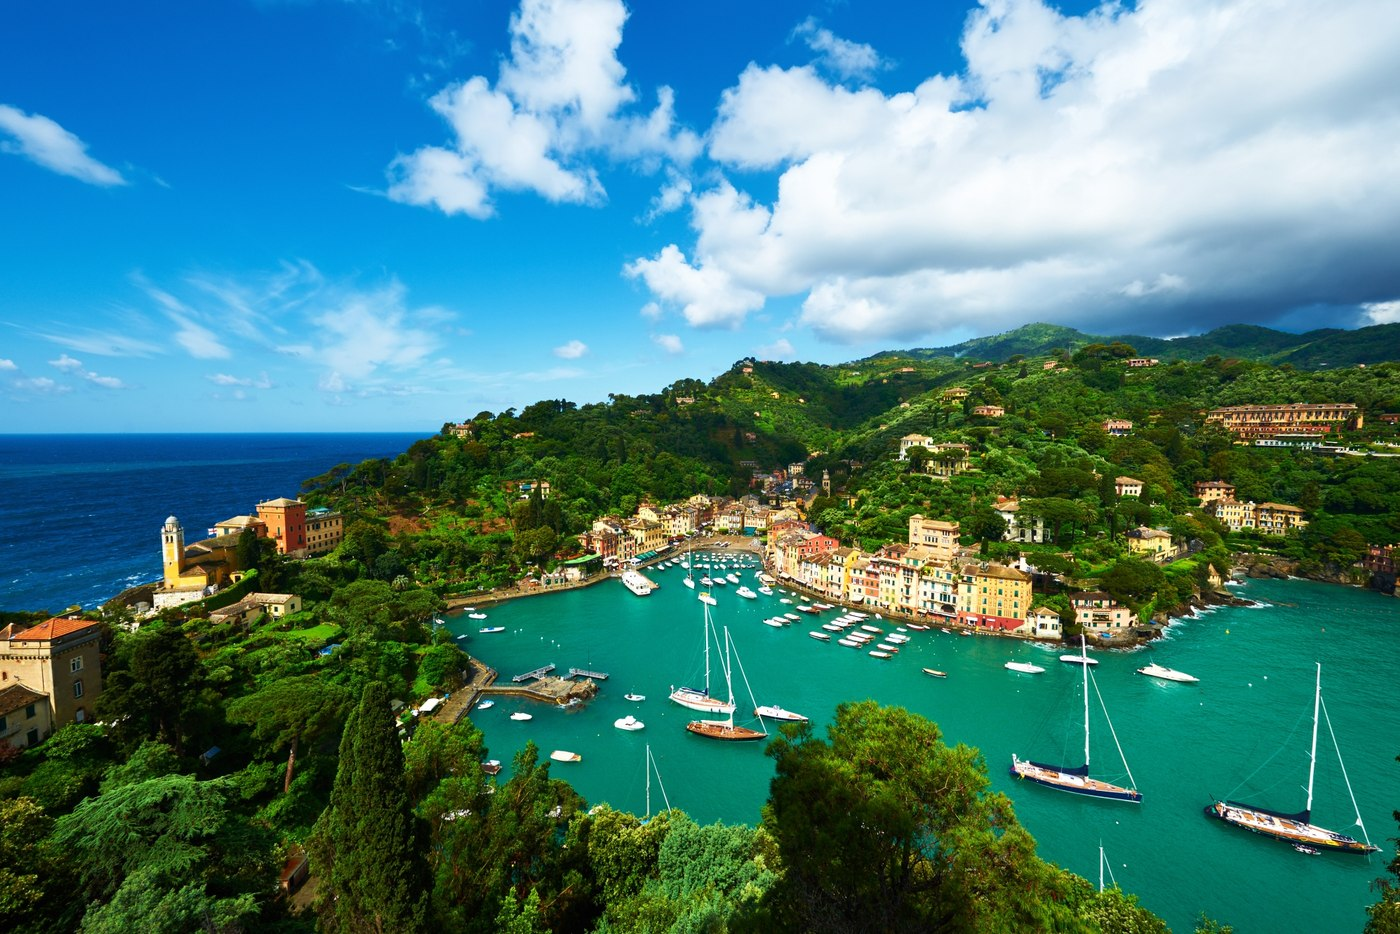 Photo Tour of Portofino 5